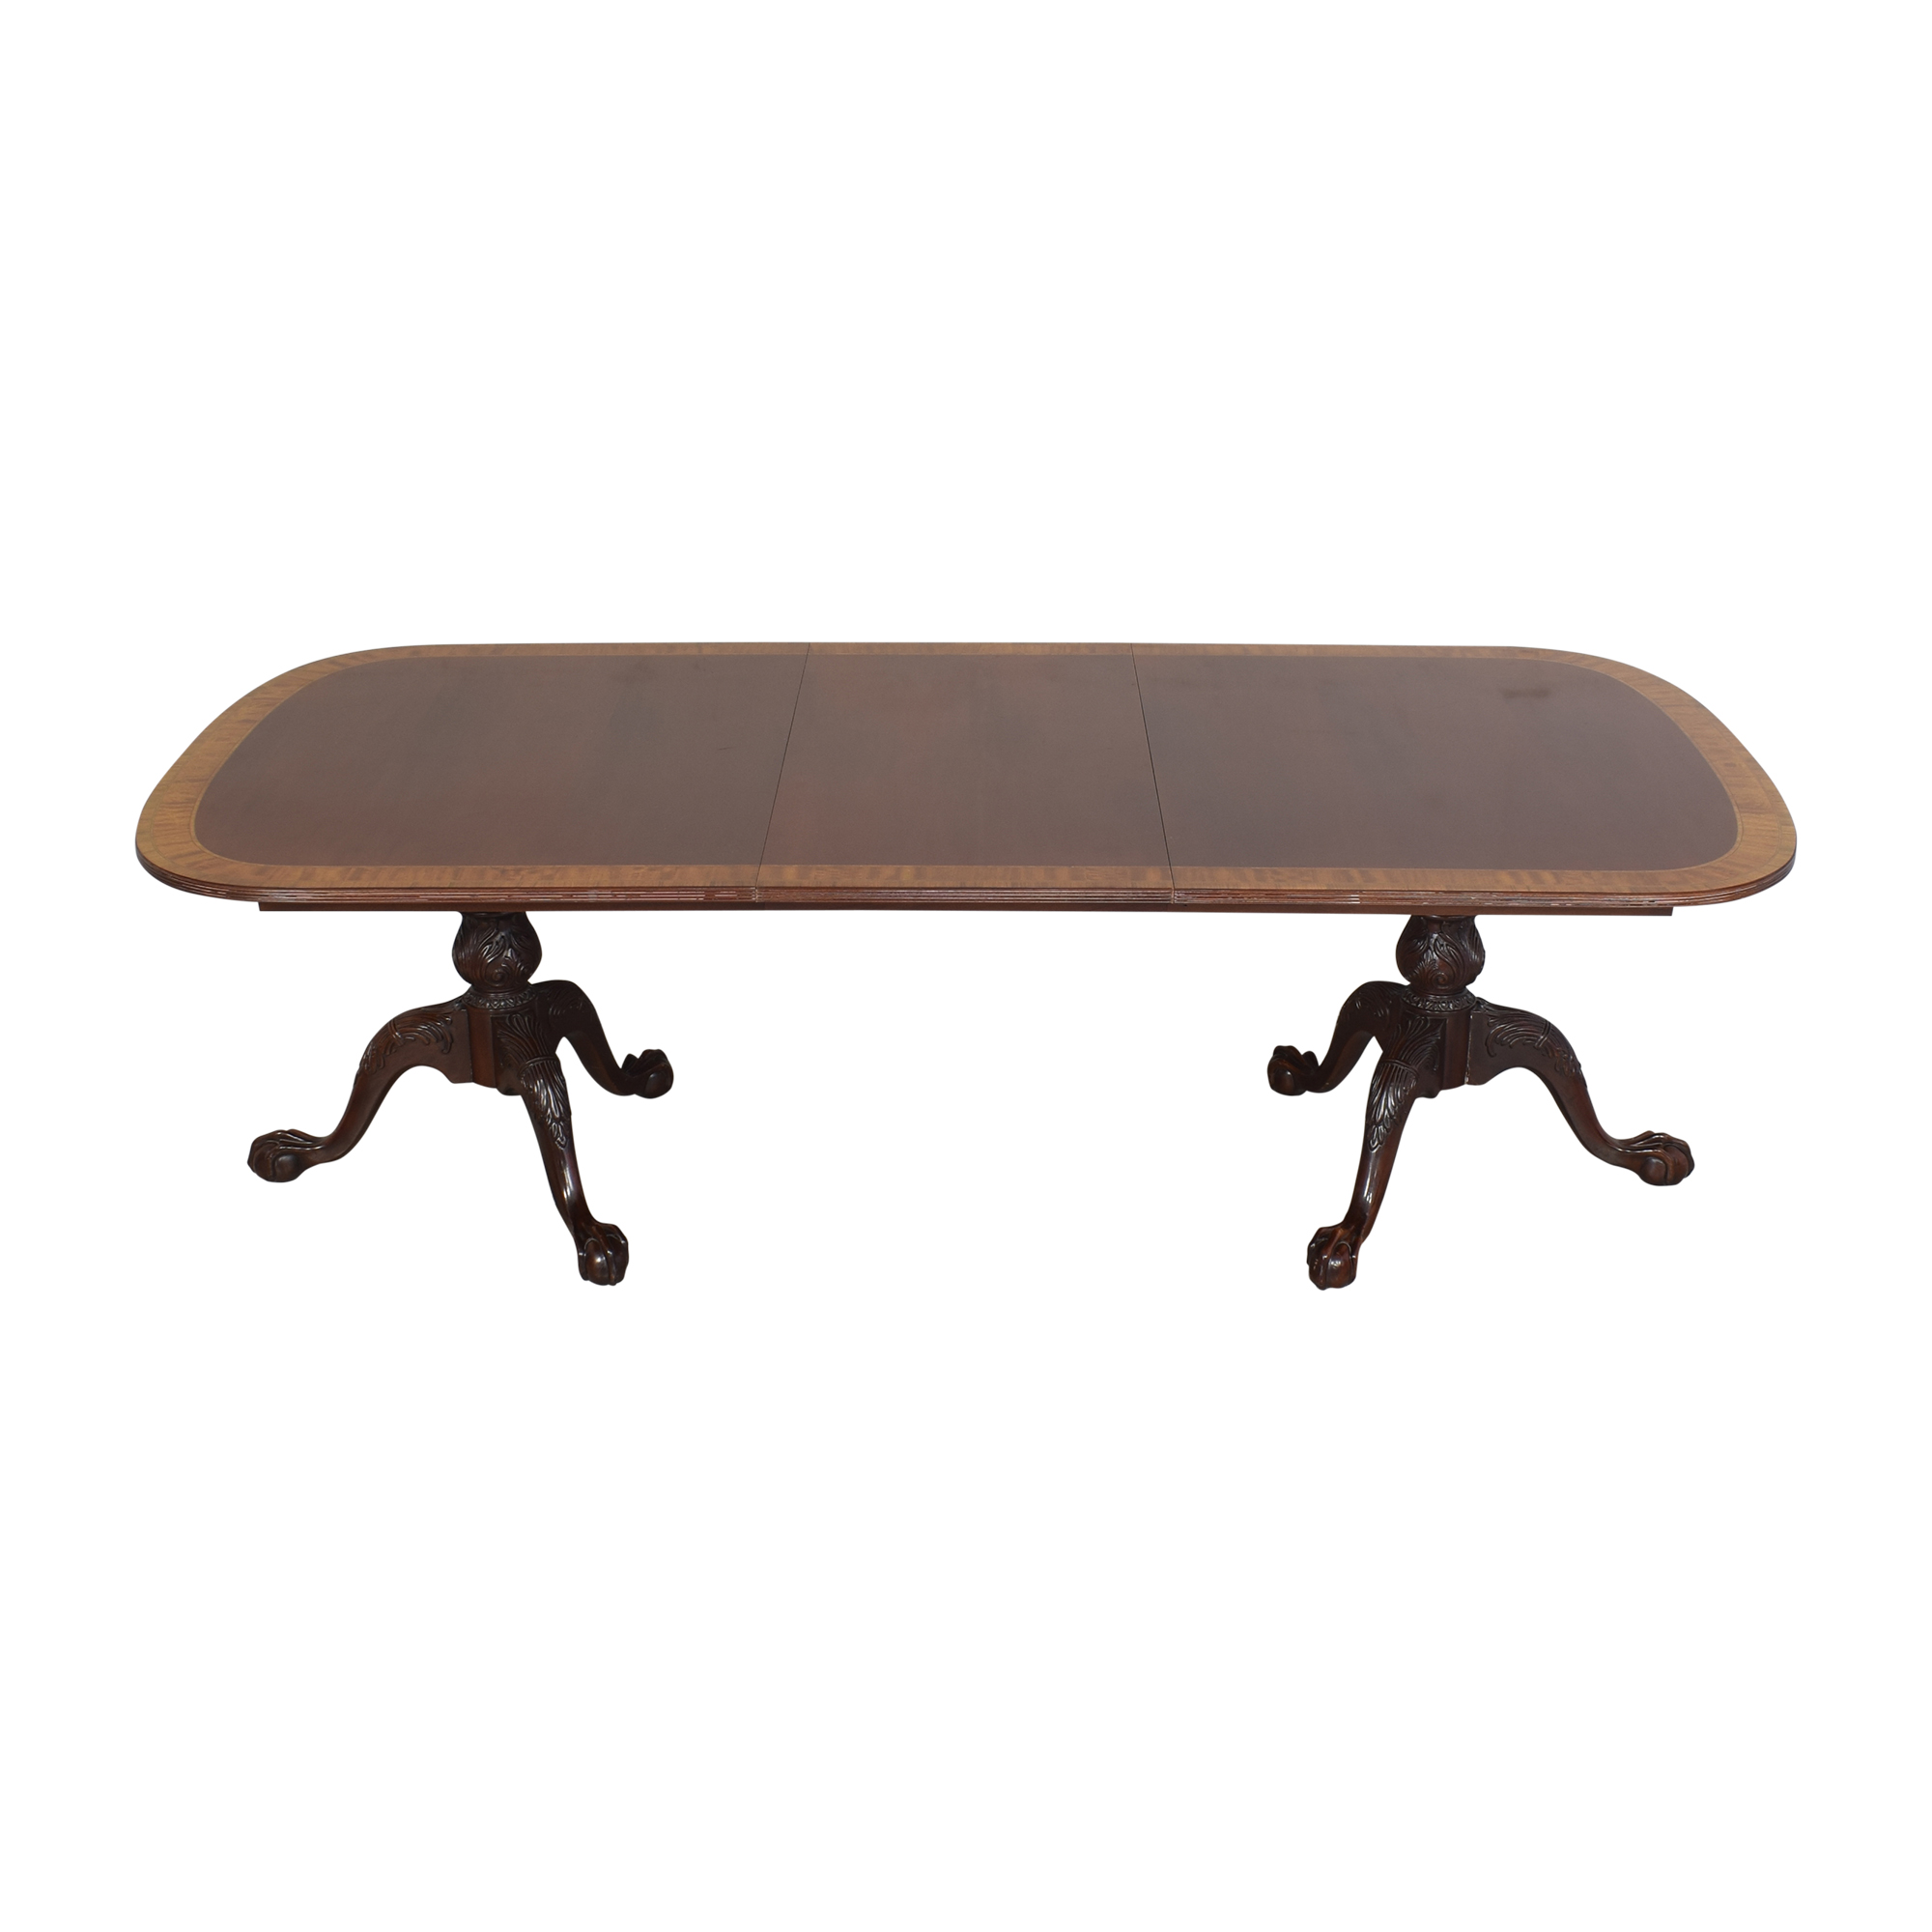 Councill Double Pedestal Dining Table / Tables